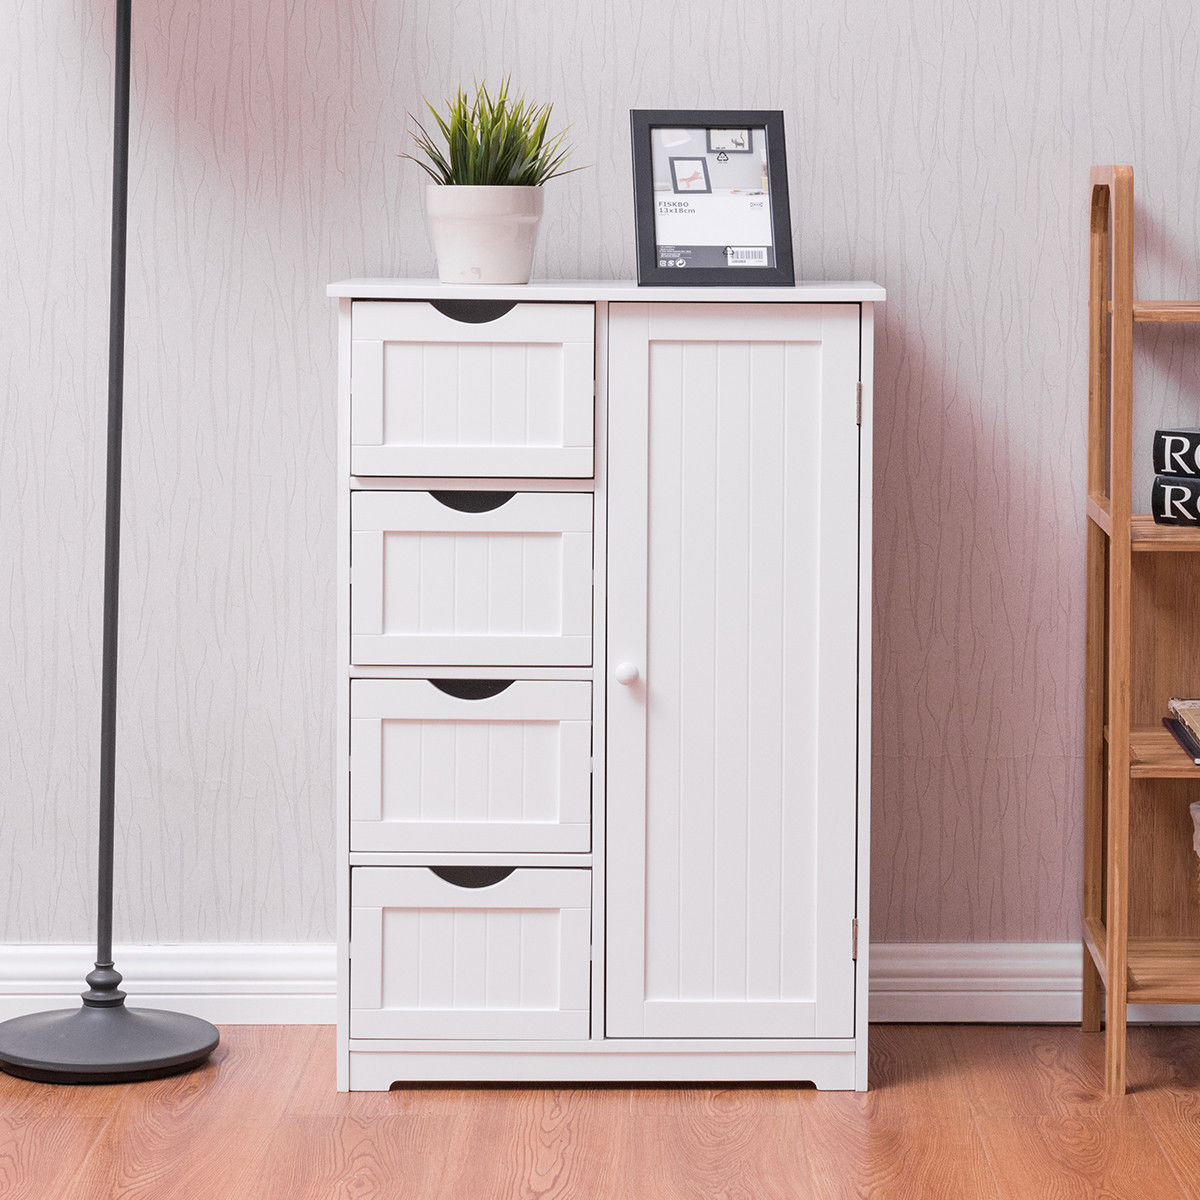 free standing bathroom storage ideas costway wooden 4 drawer bathroom cabinet storage cupboard 23795